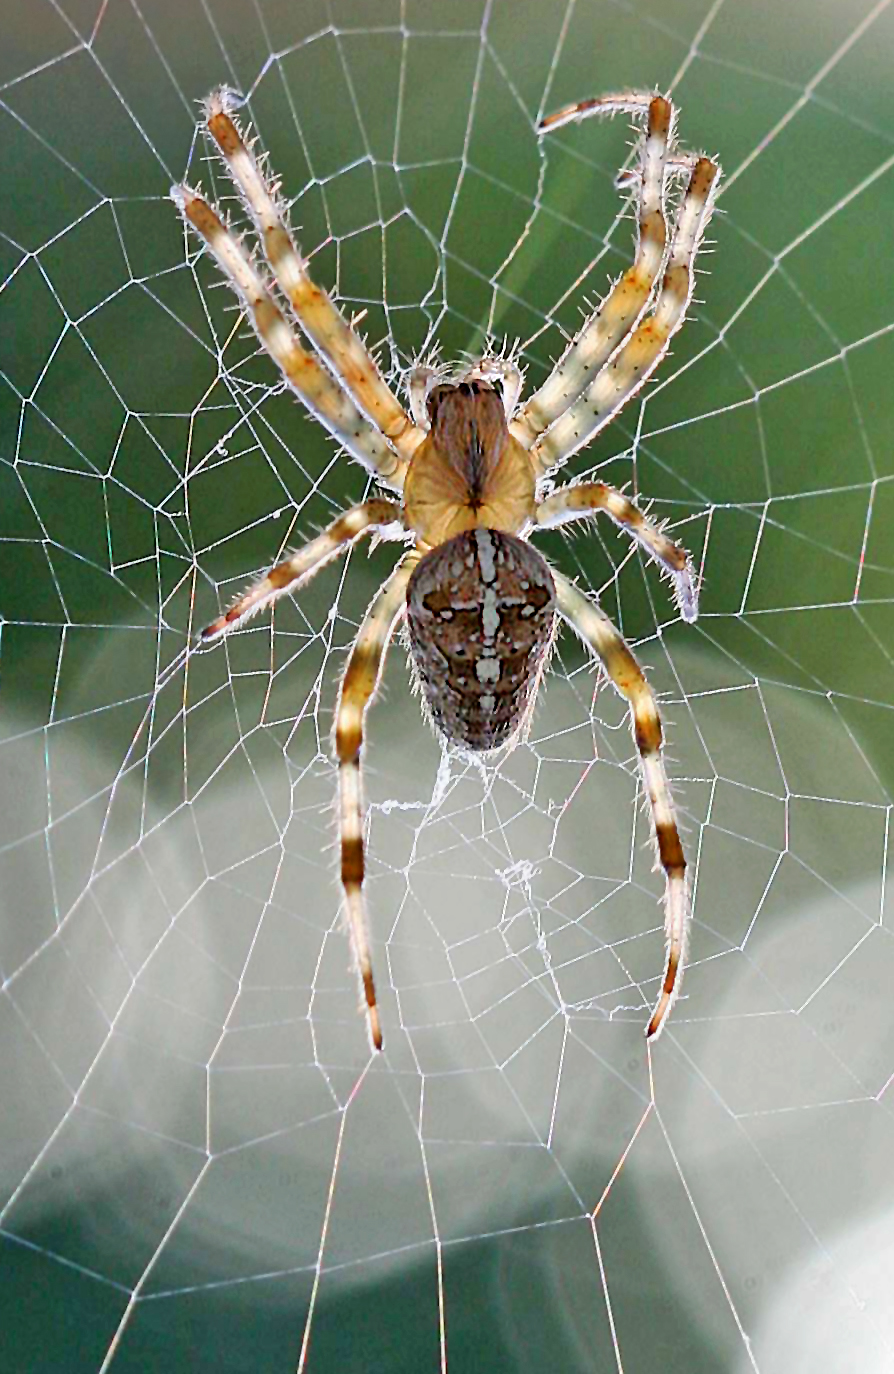 Spider in it's web